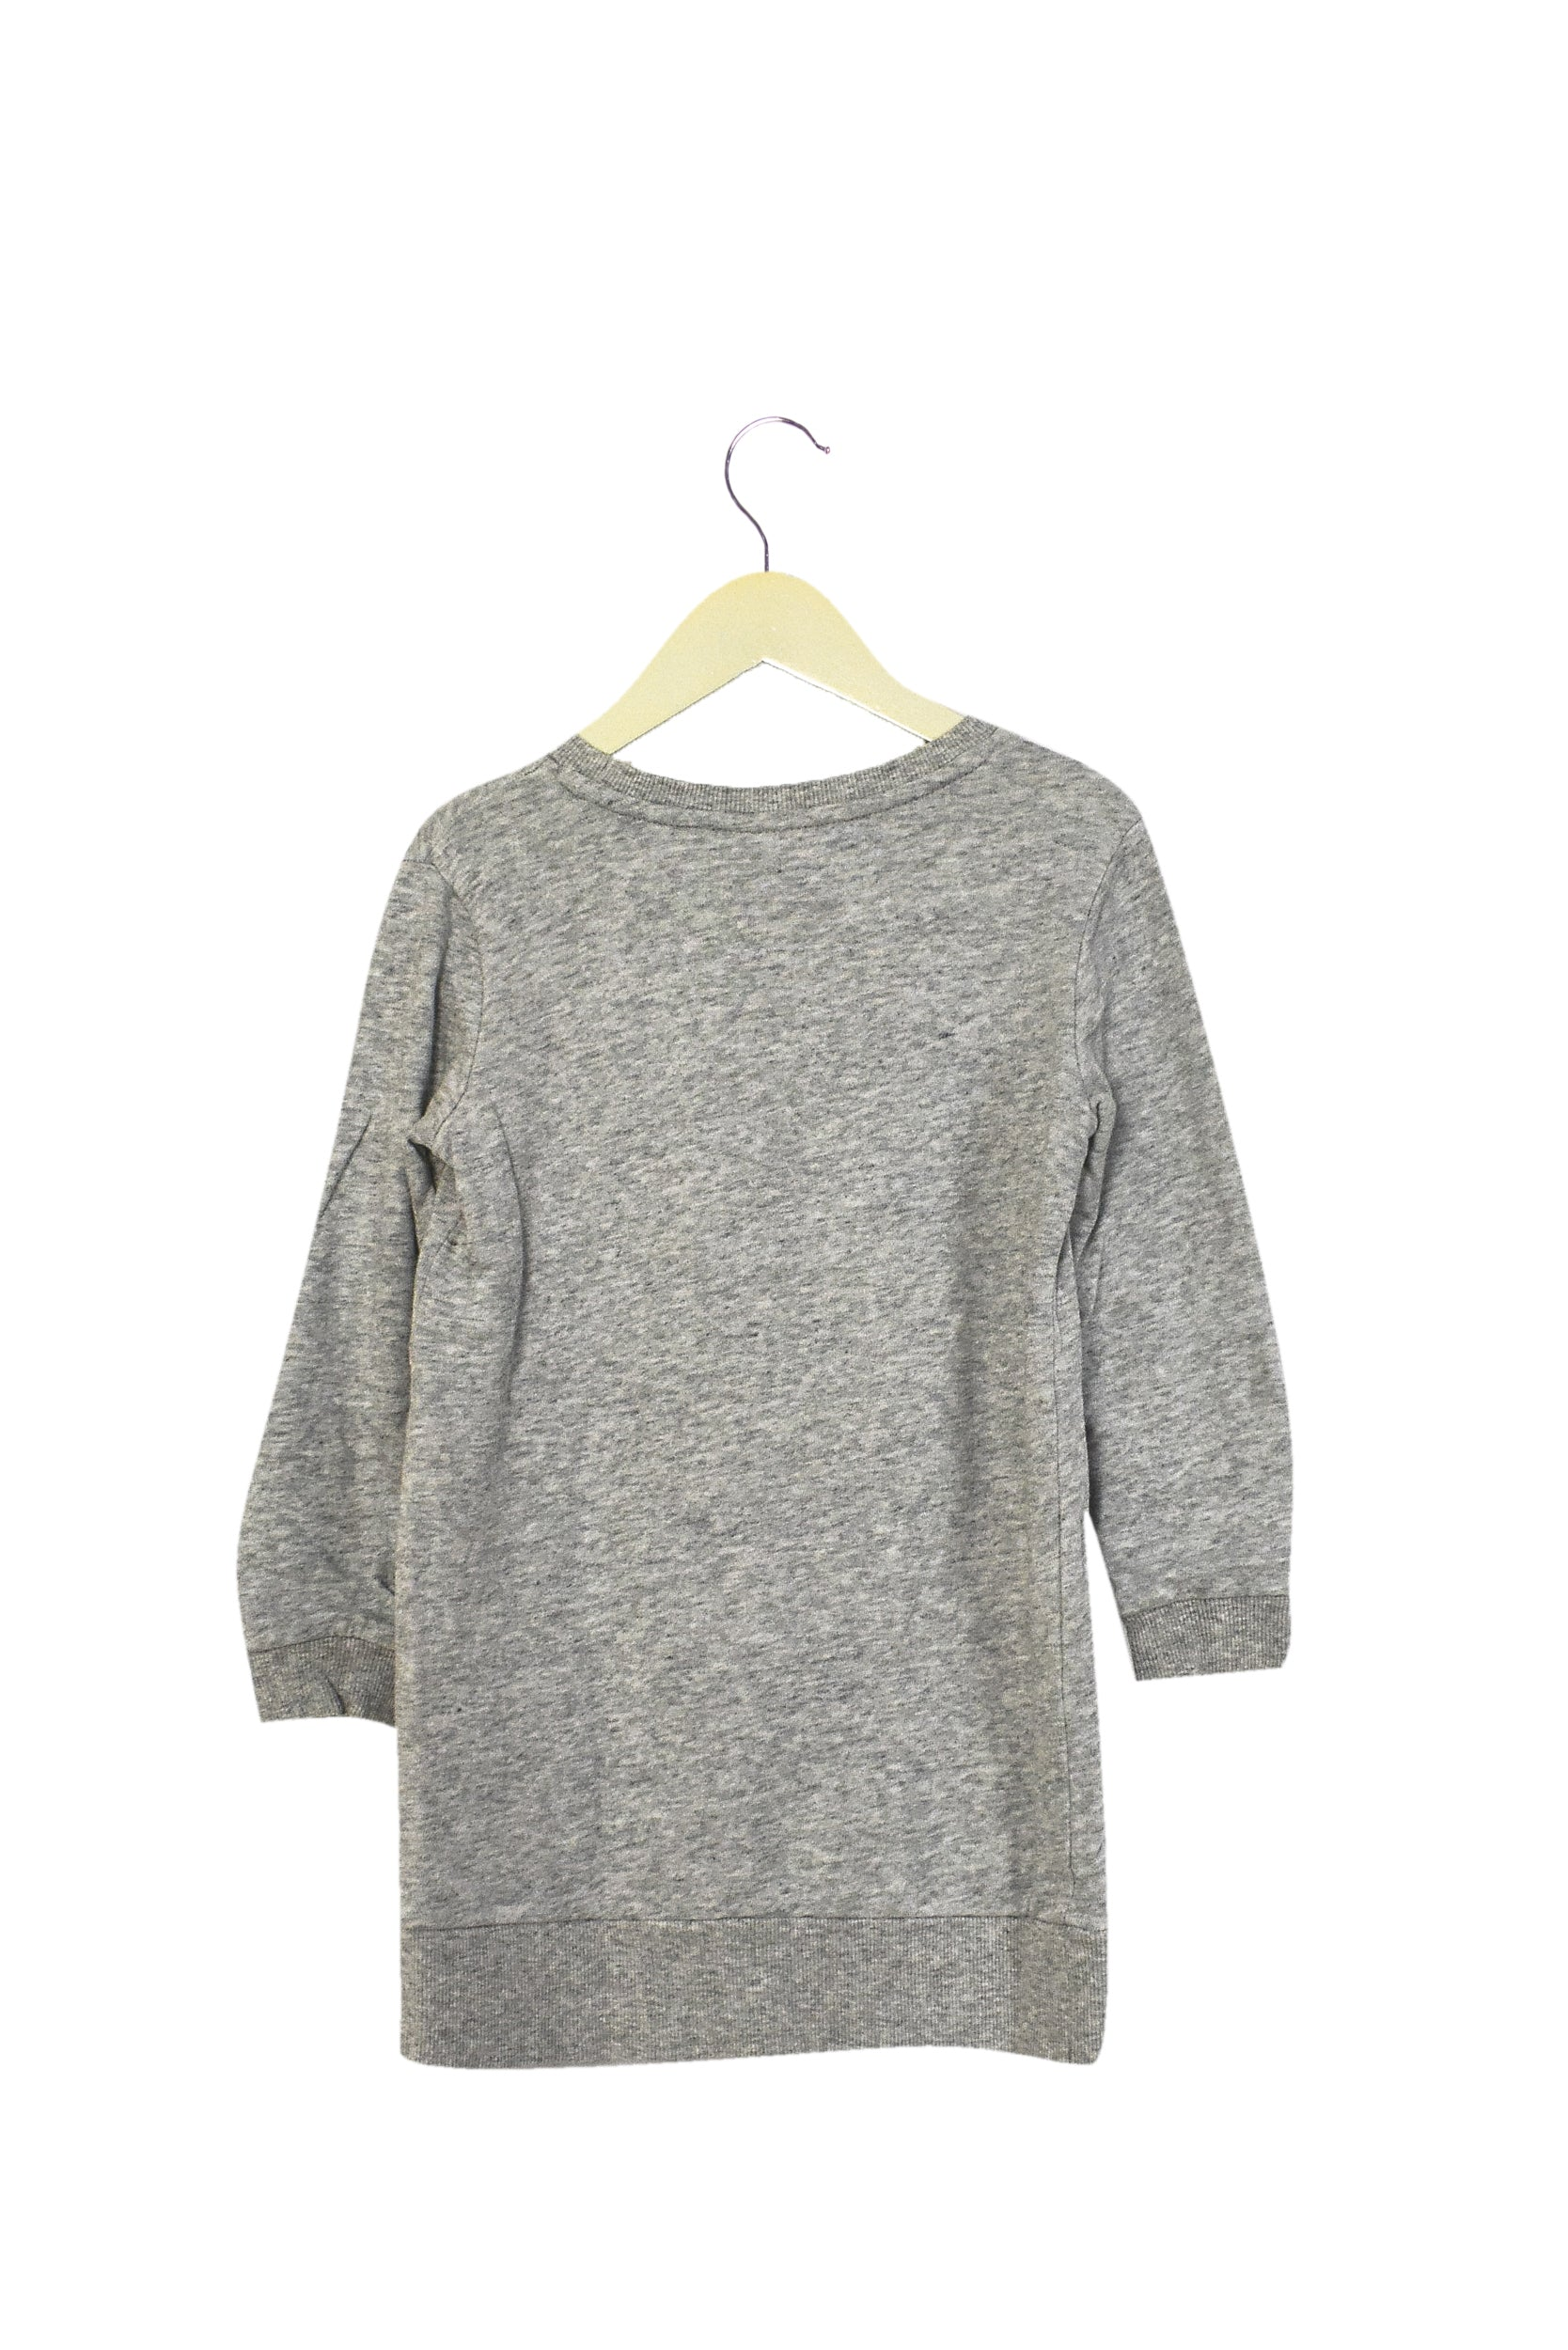 Sweater Dress 4T at Retykle